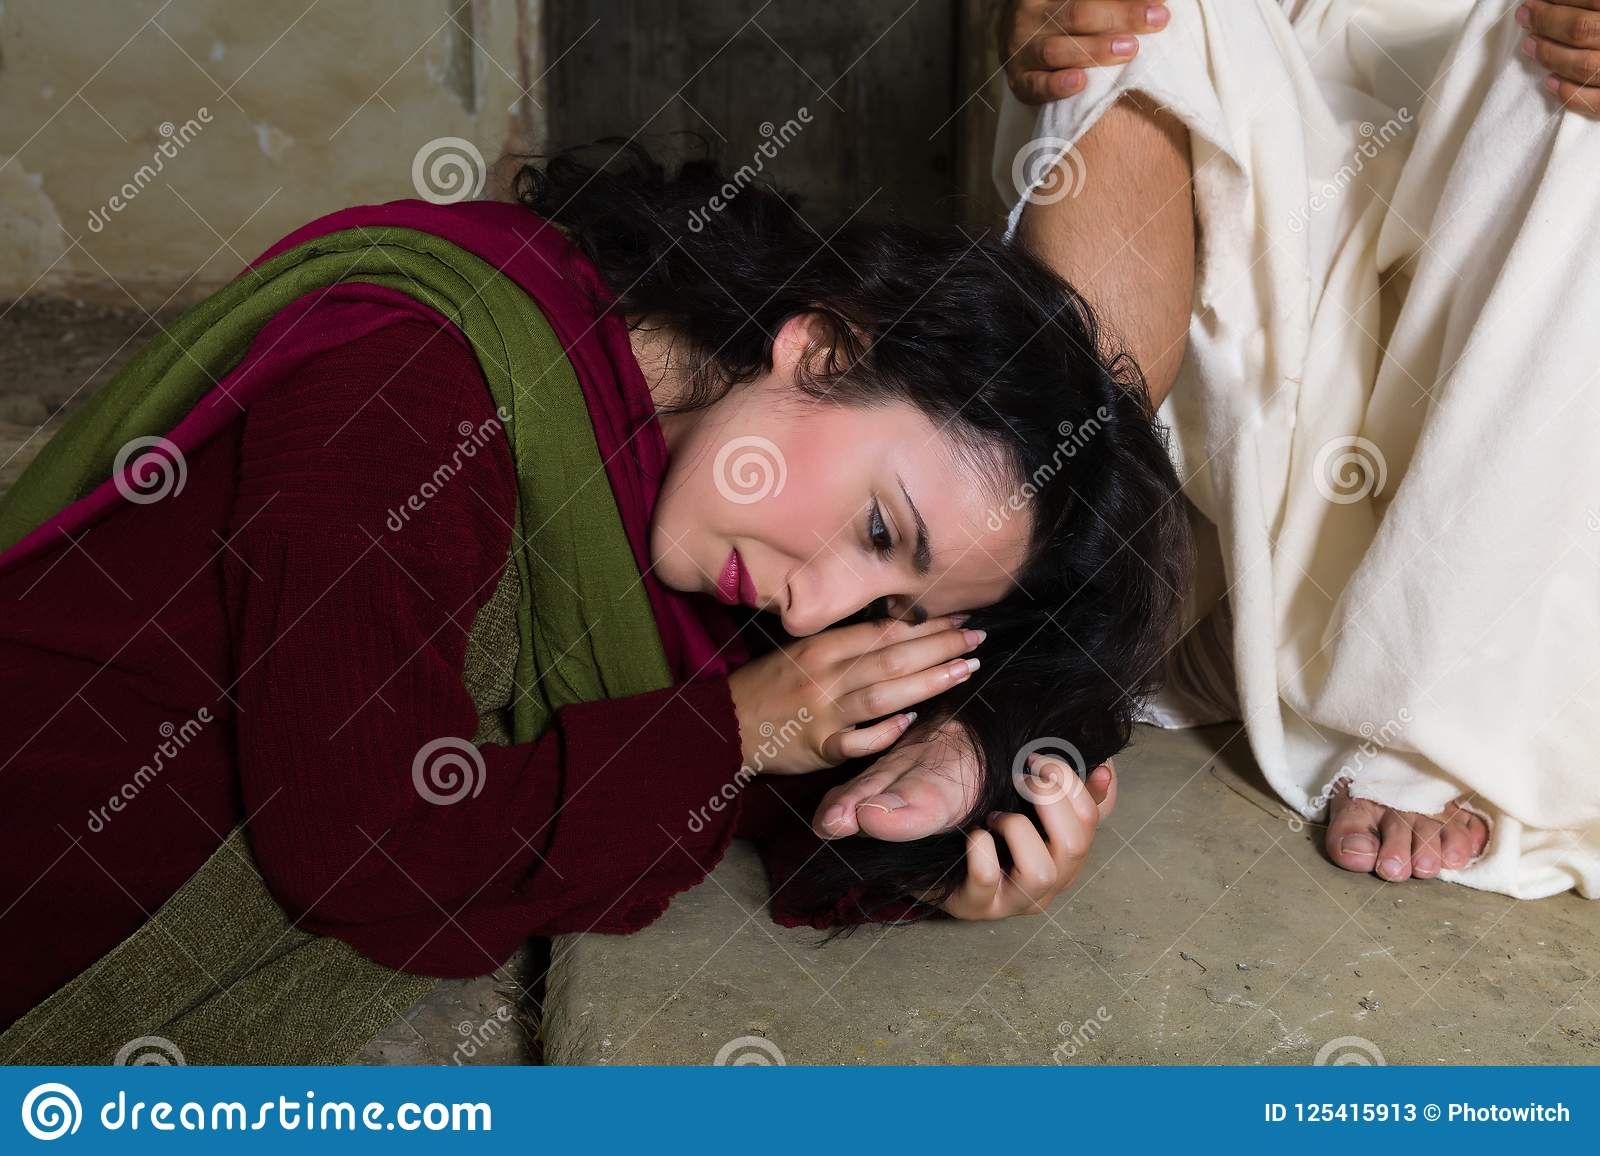 Mary Magdalene Feet Photos - Free & Royalty-Free Stock Photos from  Dreamstime